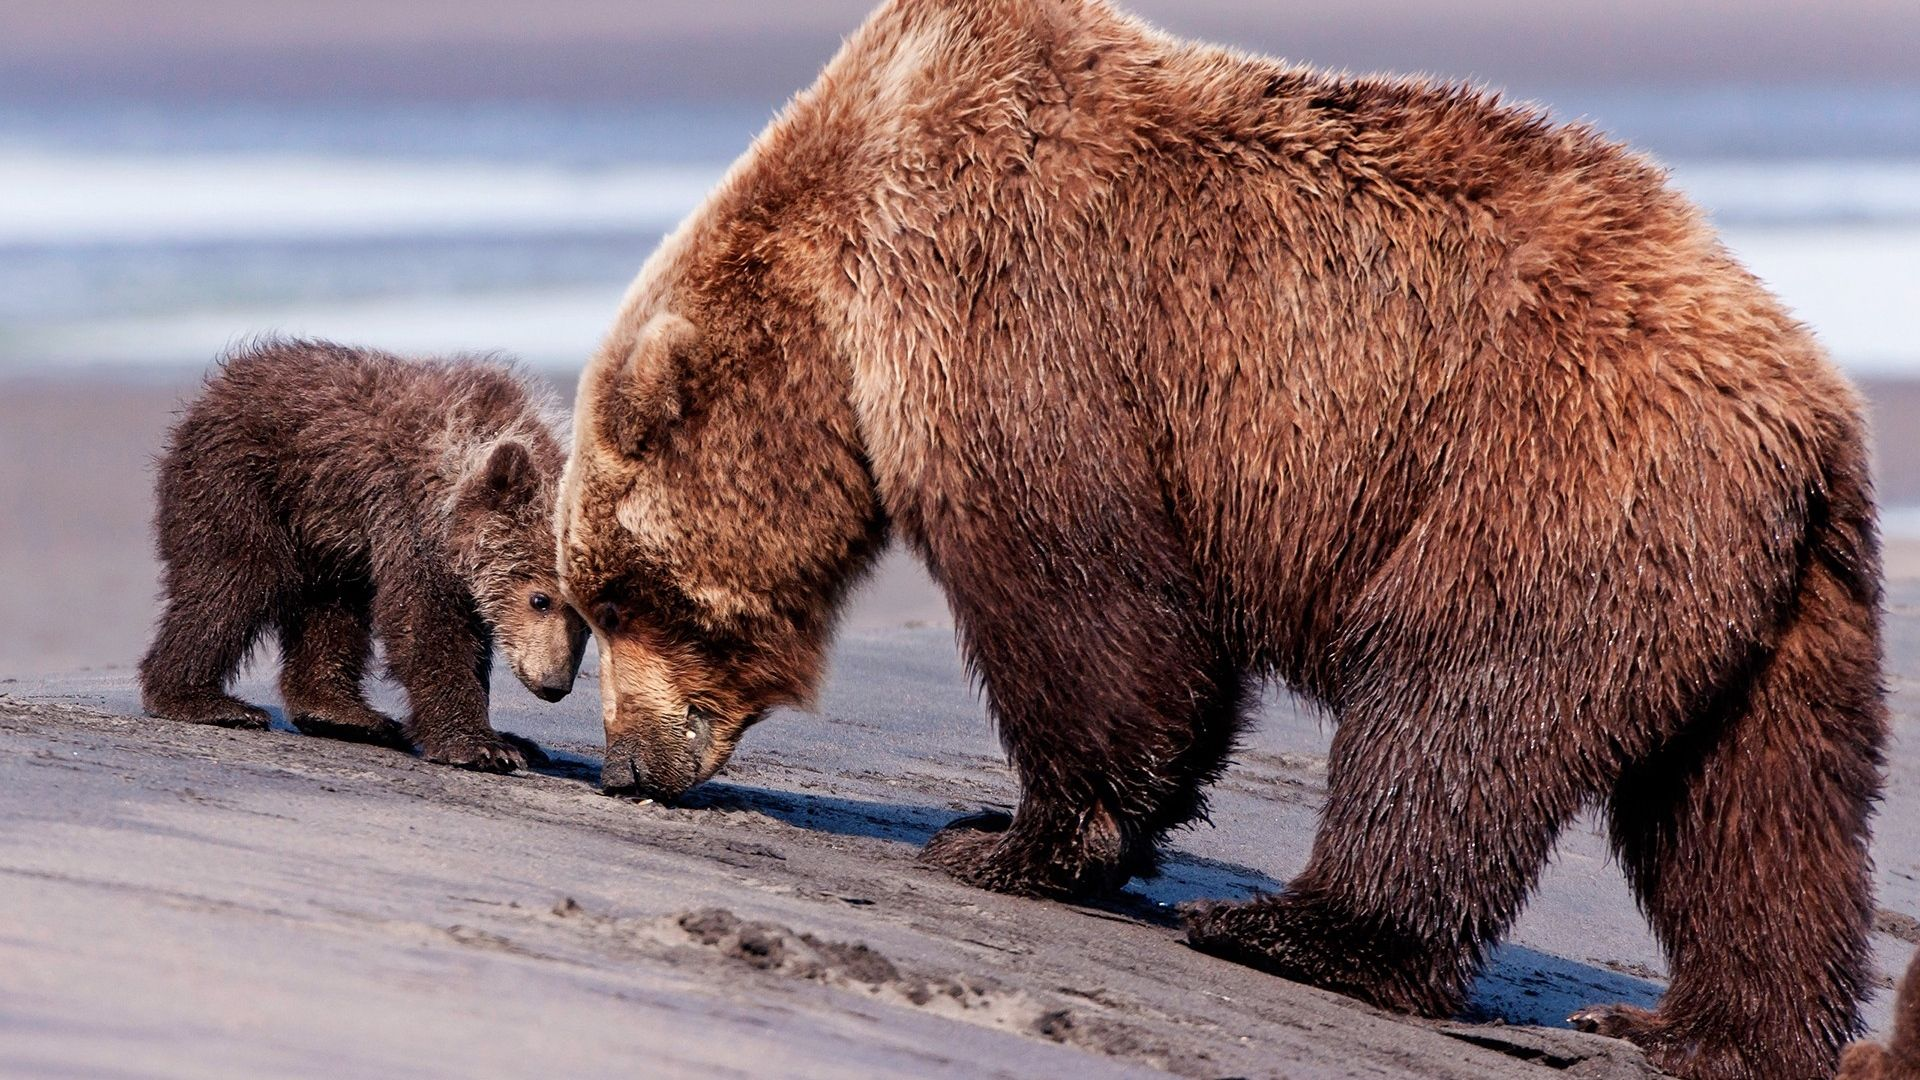 Download Bears, Couple, Baby Wallpaper, Background Full Hd, Hdtv